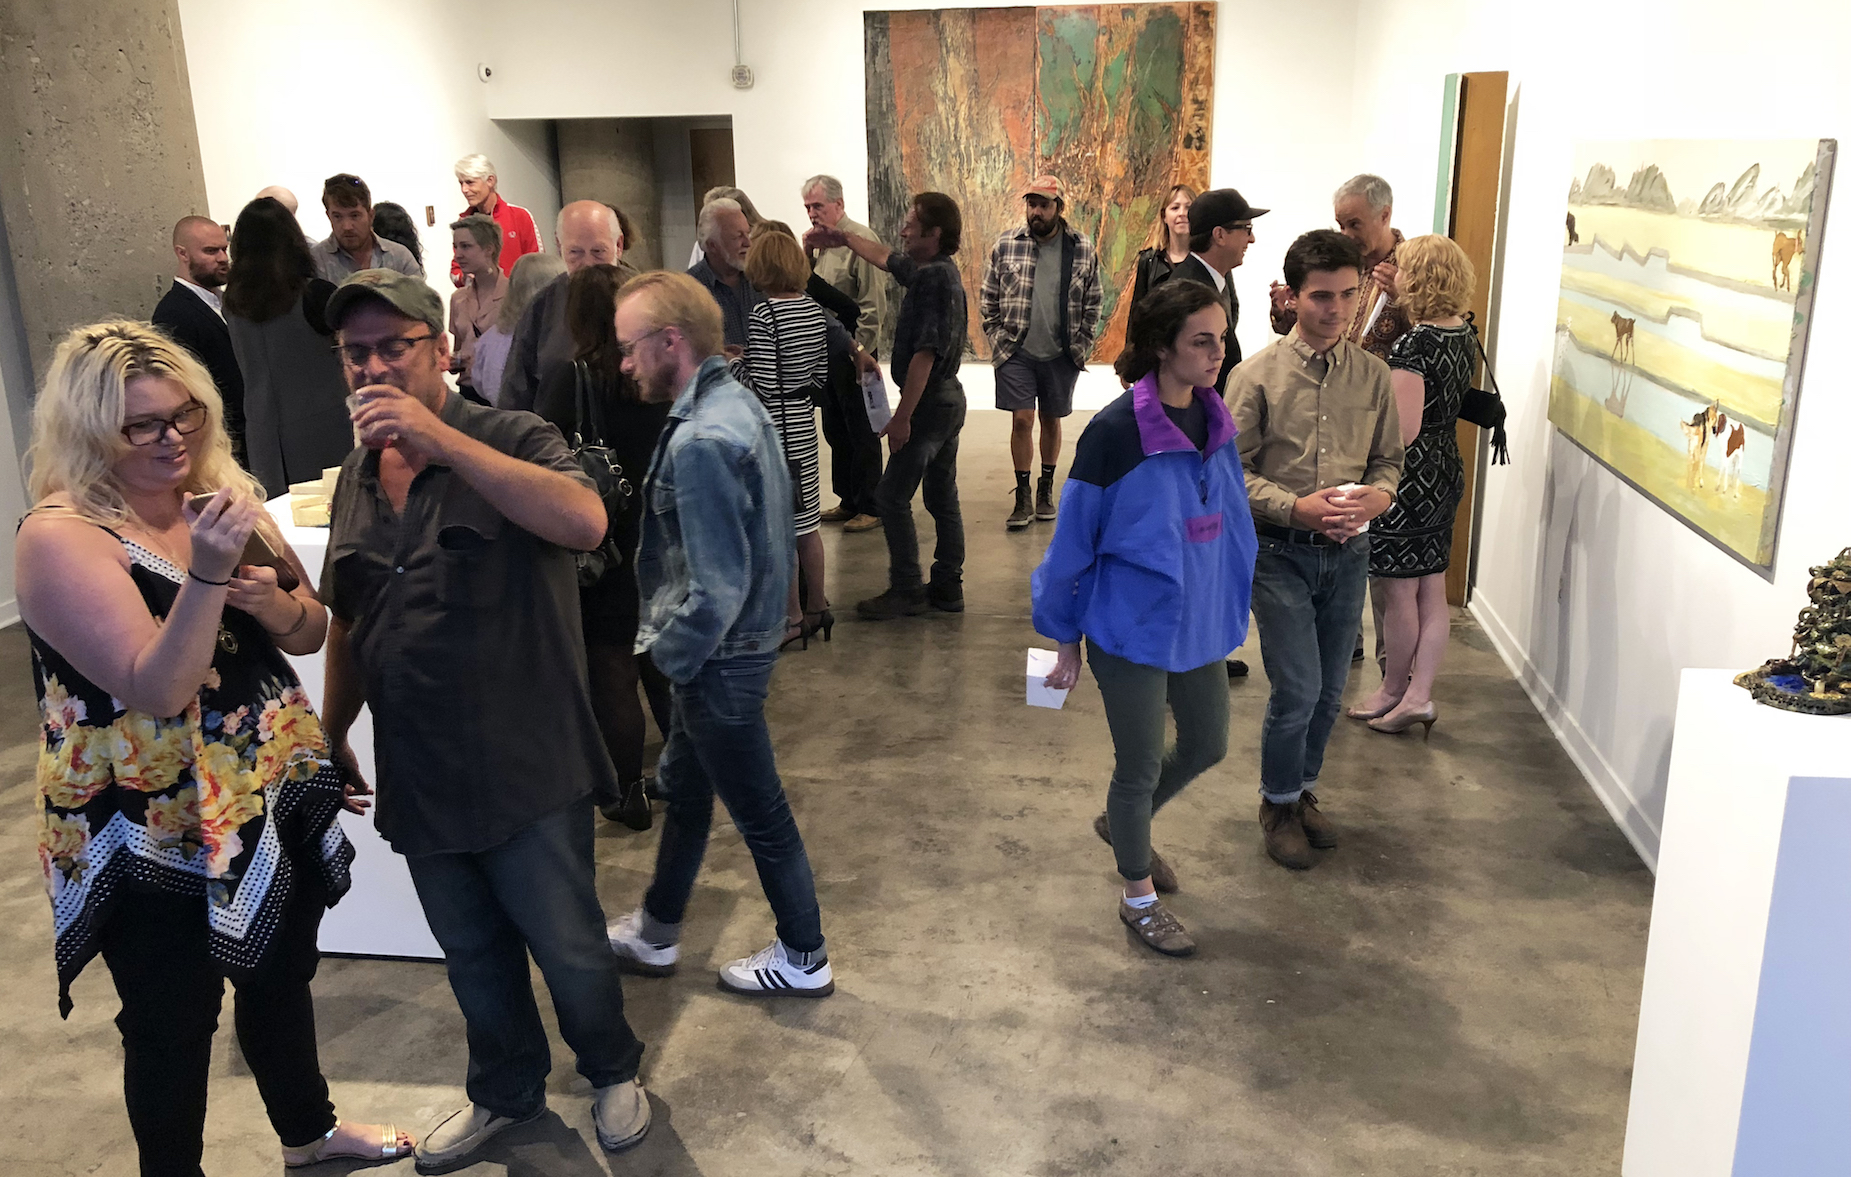 Cass Corridor, Connecting Times: Brenda Goodman, Kathryn Bracket Luchs, Ann  Mikolowski, Nancy Mitchnick, Ellen Phelan, And Nancy Pletos. Image DAR